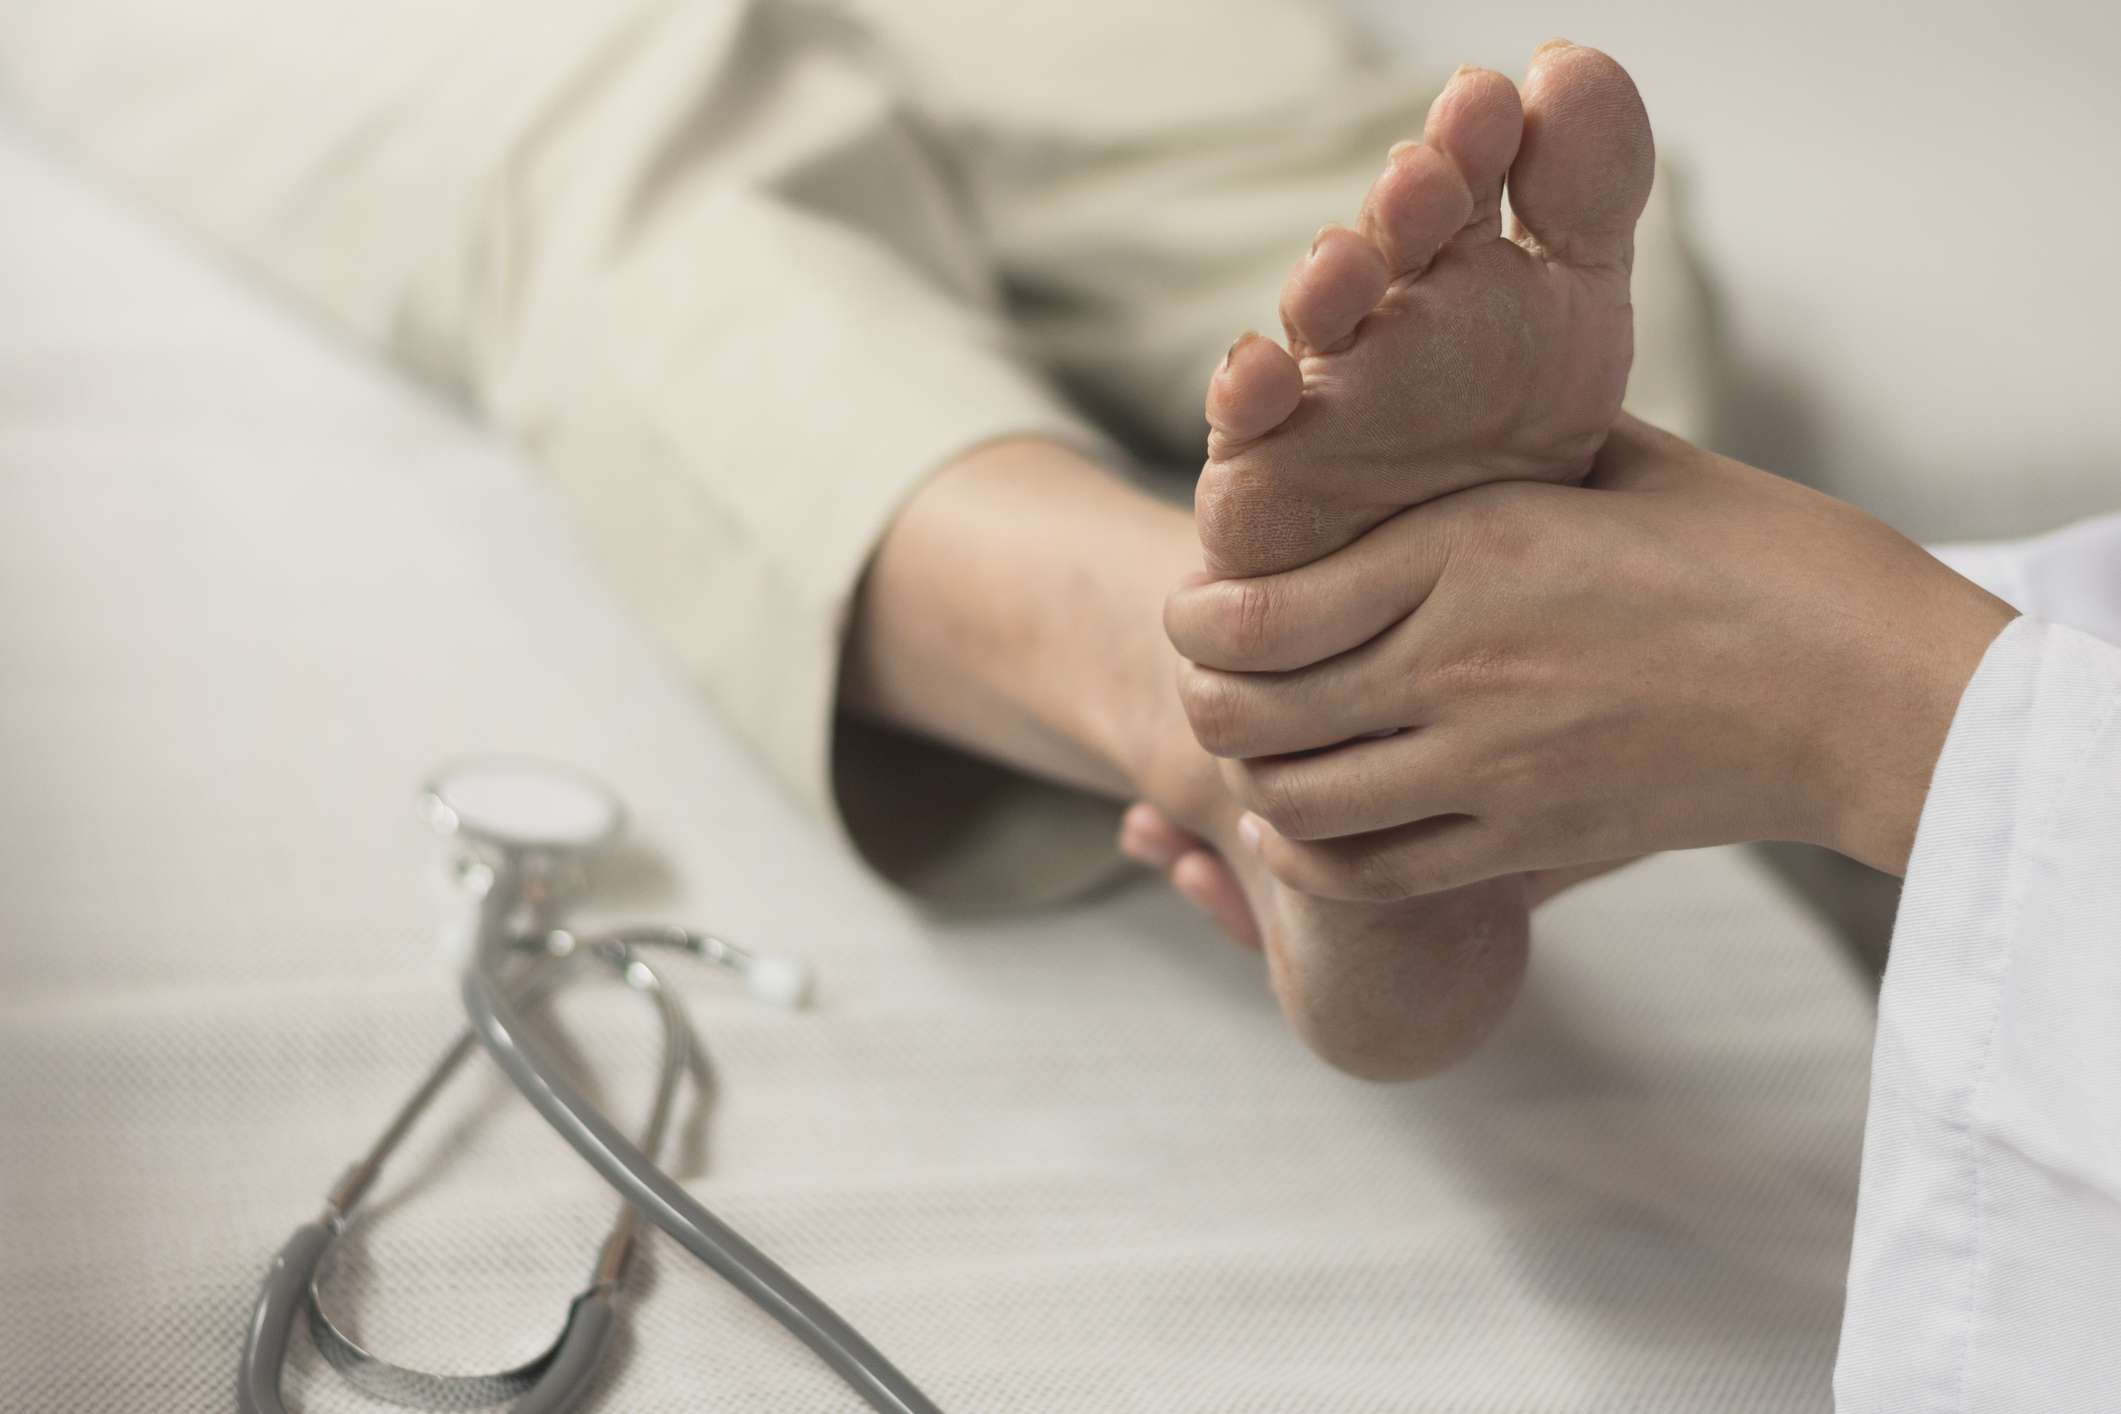 foot being examined at the doctor